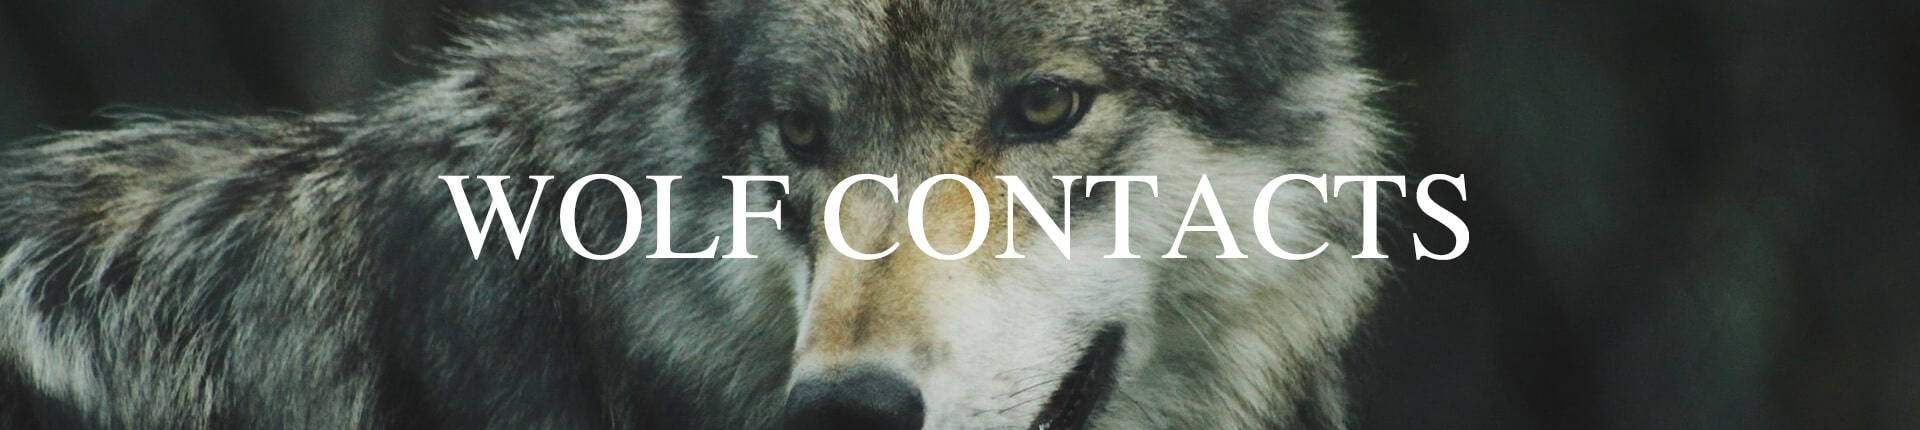 Wolf Contacts